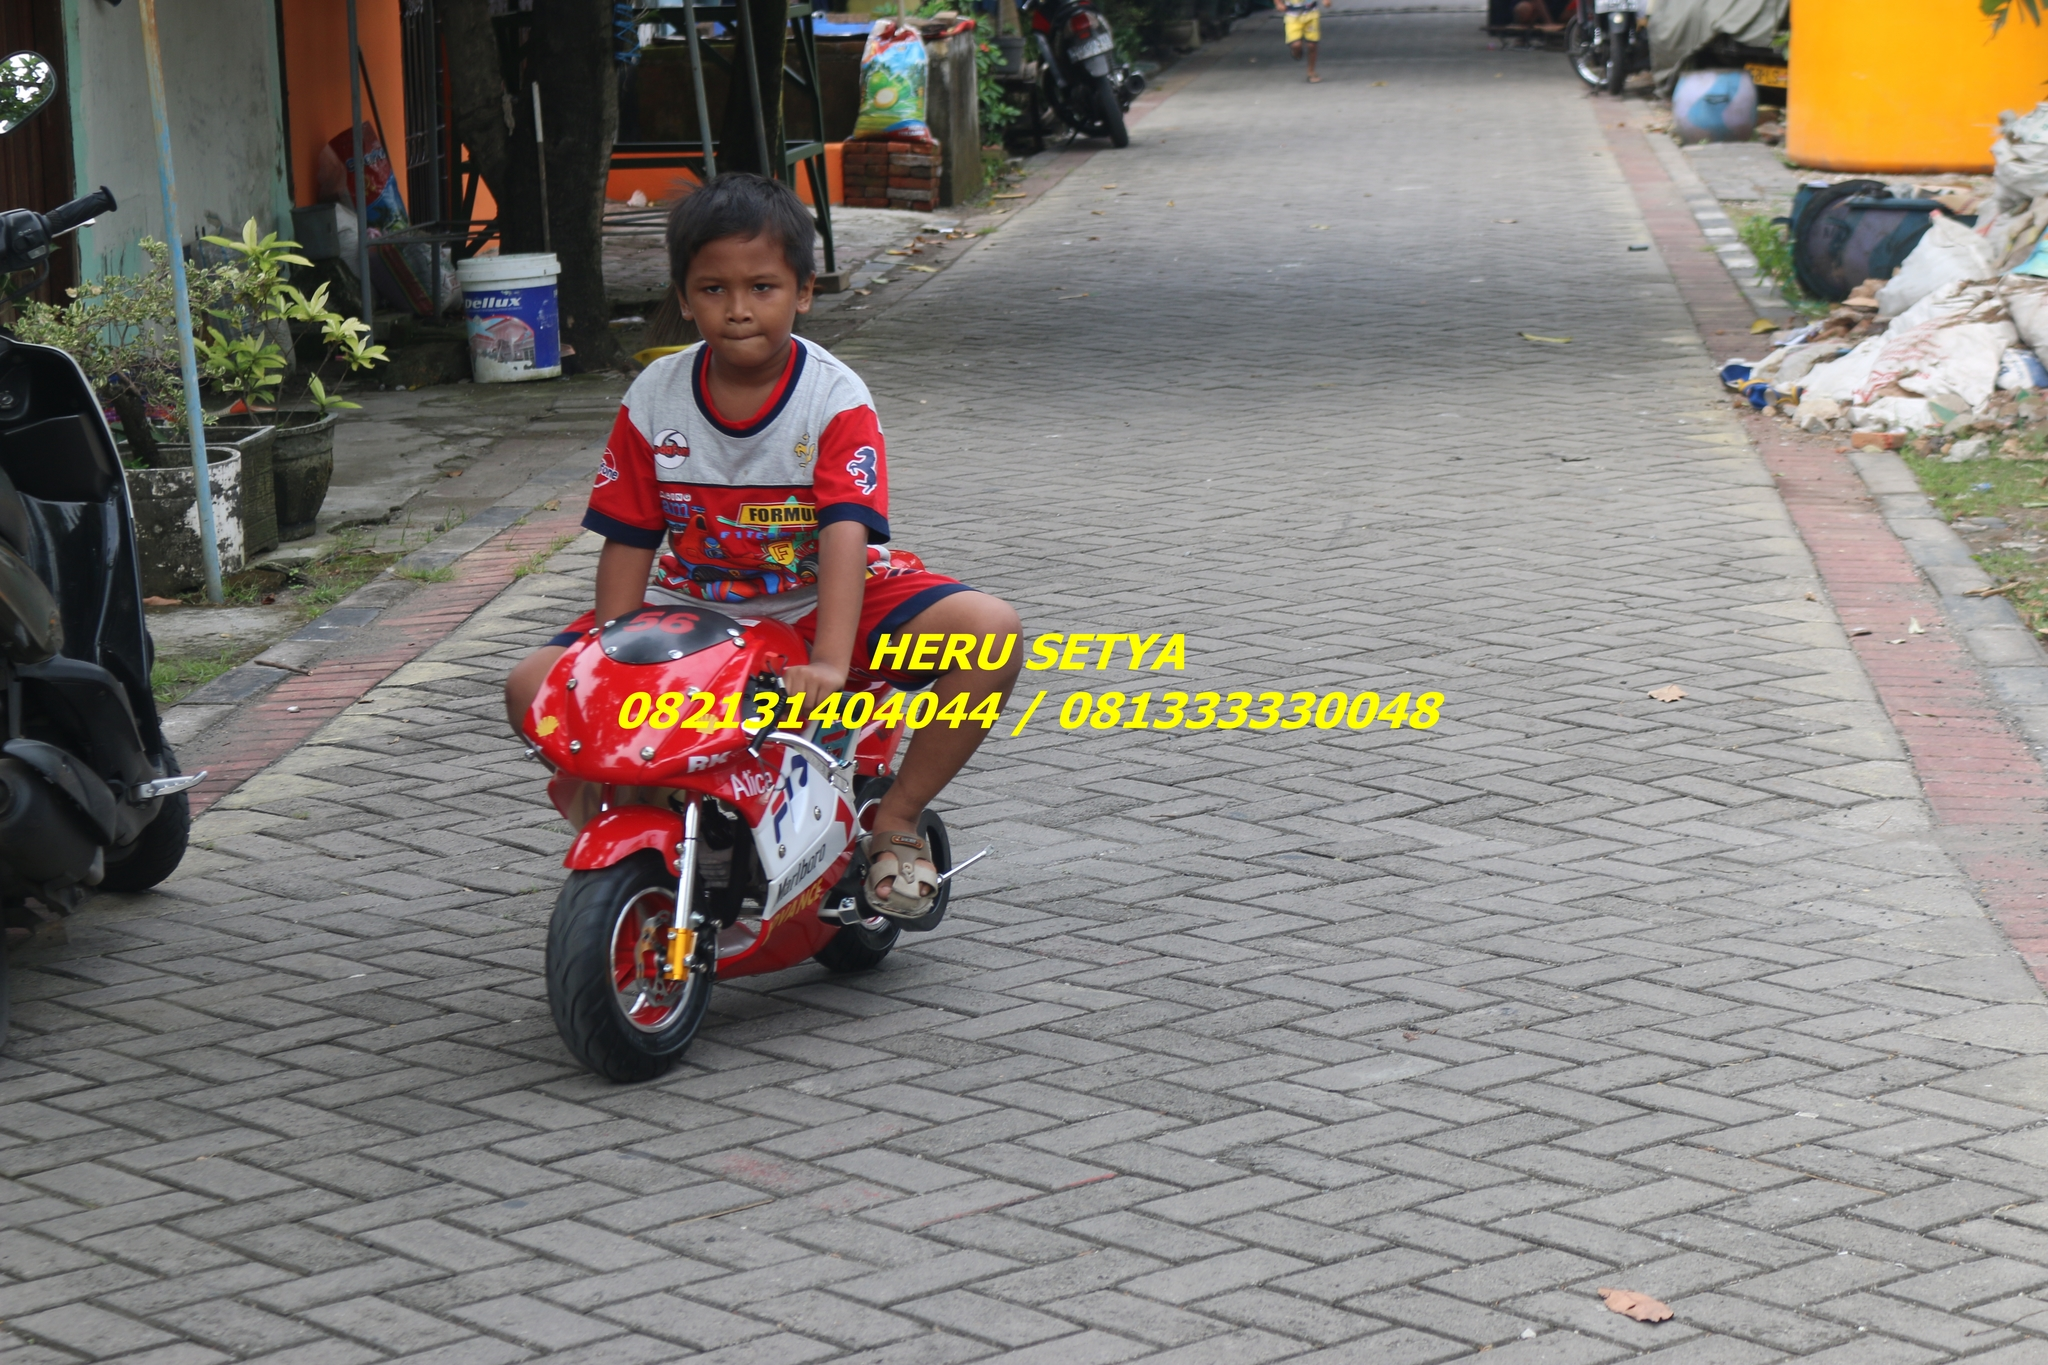 Jual MOTOR GP MINI 50 CC Motor Atv Tokopedia